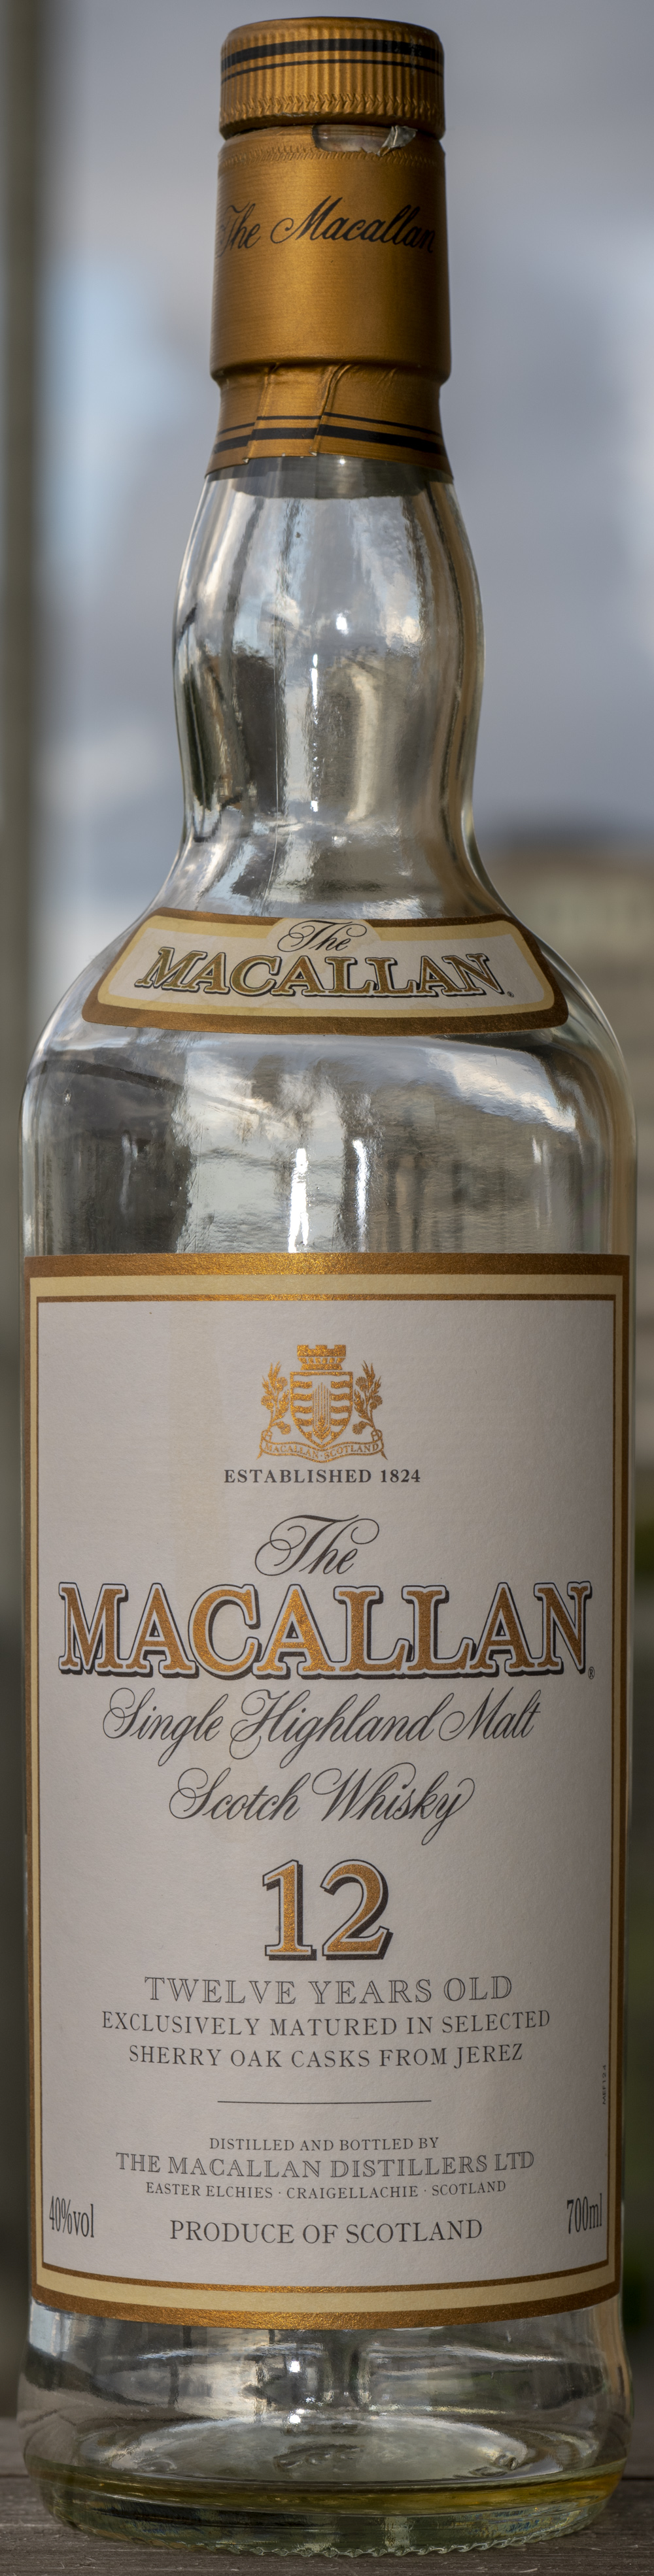 Billede: PHC_1849 - MacALlan 12 - bottle front.jpg